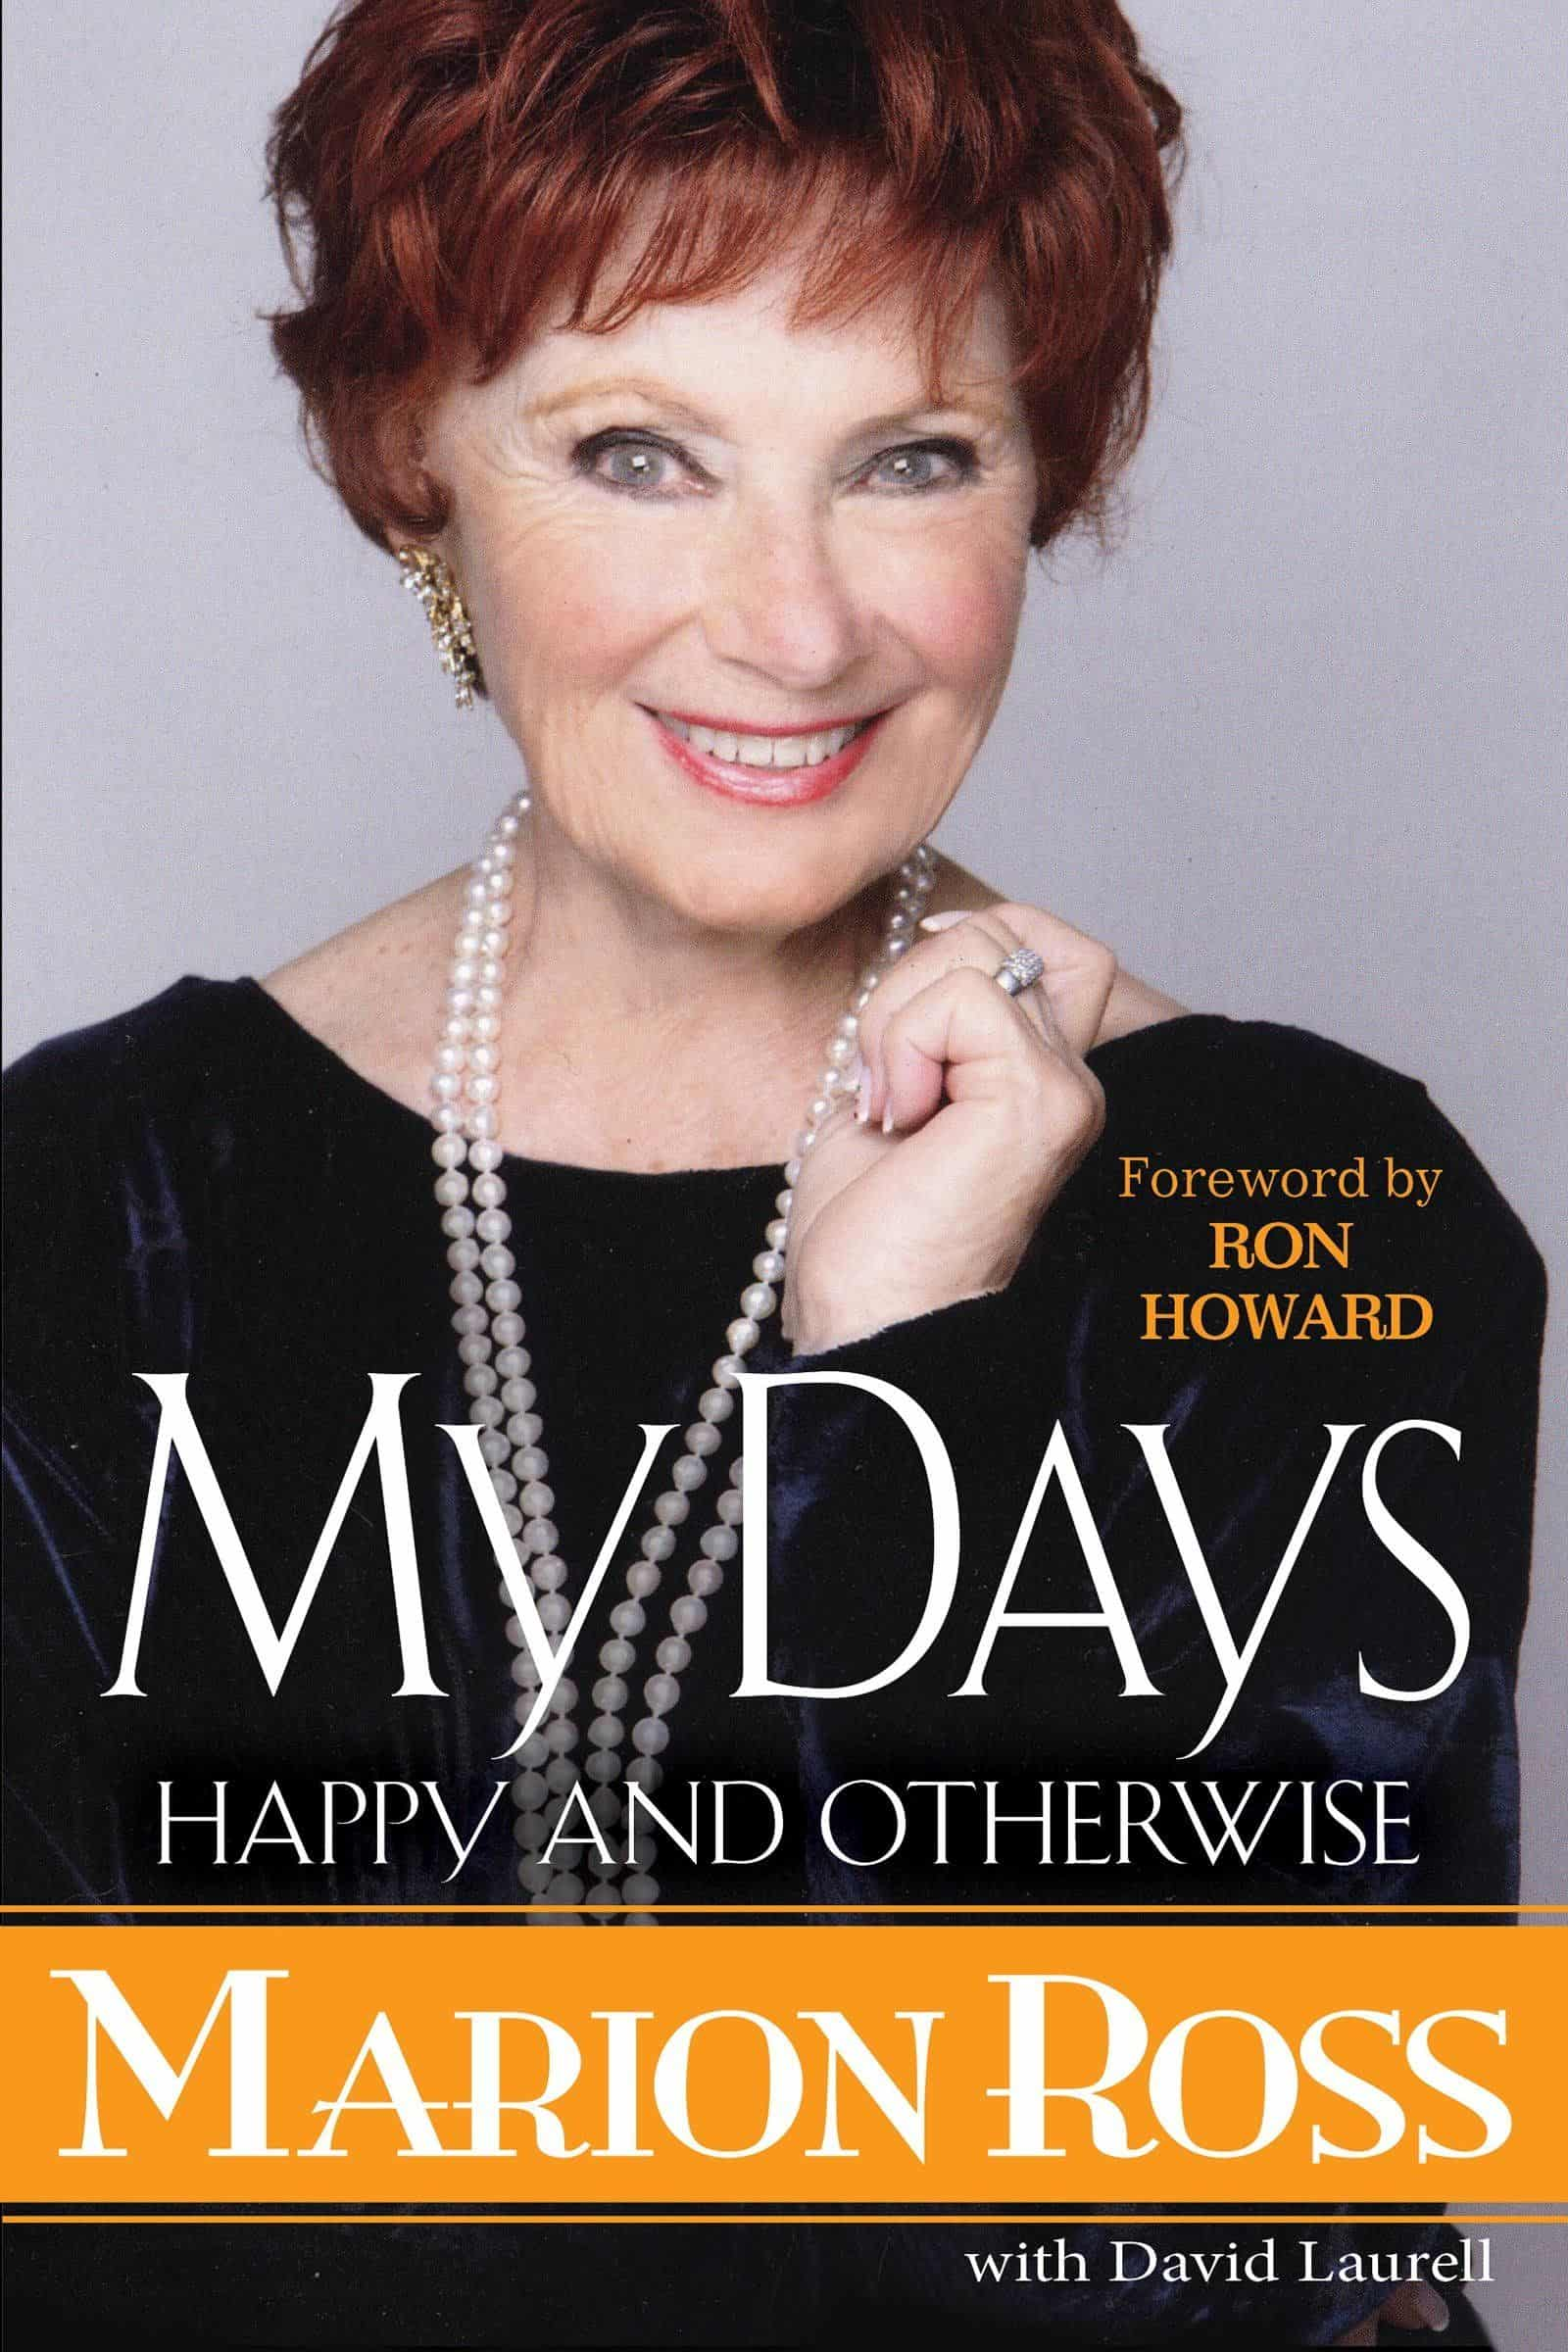 1. Cover of Marion Ross's book My Days Happy and Otherwise, published March 27, 2018 - photo provided by publicist